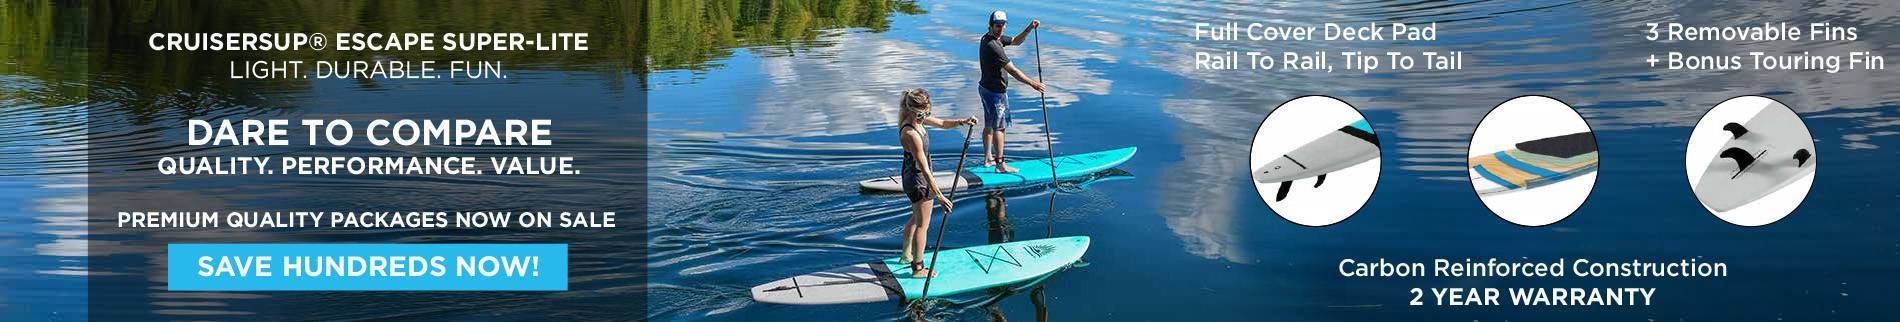 Tip to Tail Deck Pad Paddle Boards For Sale